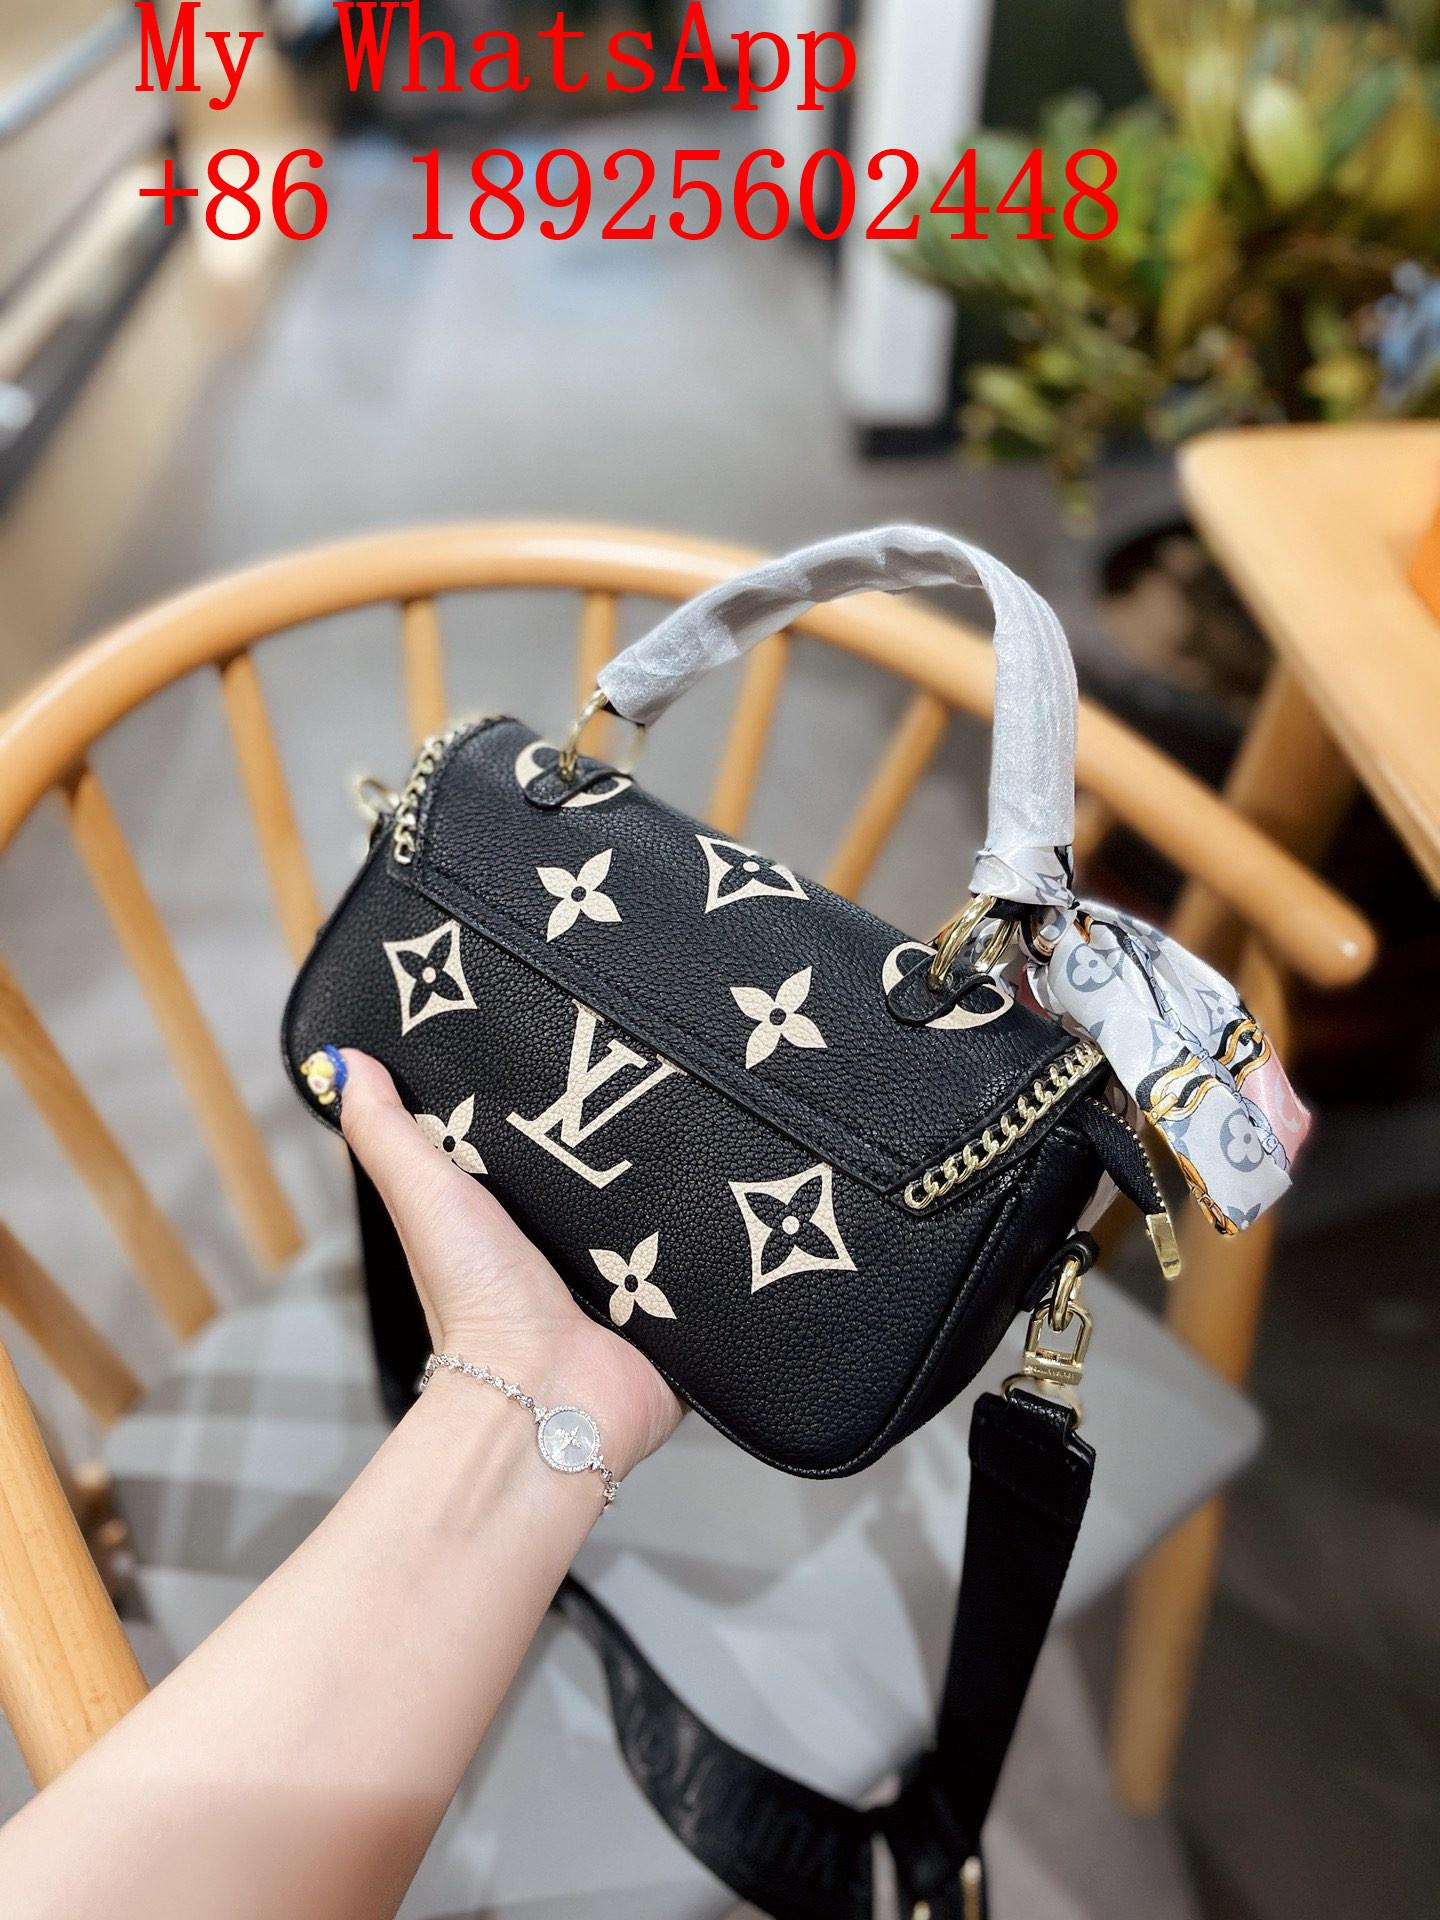 Wholesale 2021 Newest TOP1:1 LV Handbags LV Leather Bags best price